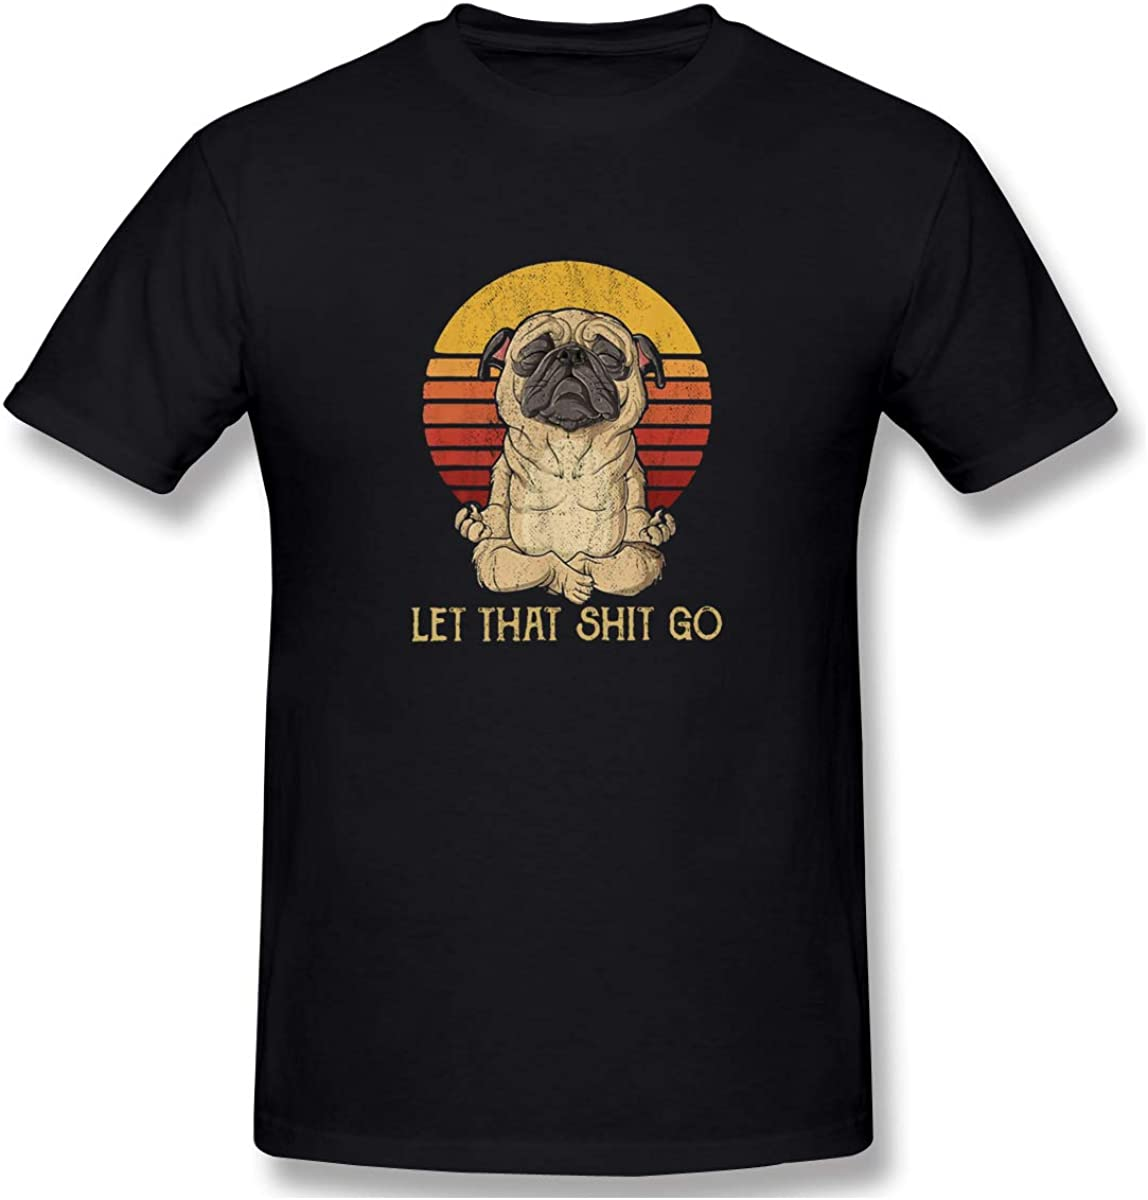 Onlybabycare Let That Shit Go Pug Yoga Men Casual Slim Fit Cotton Short Sleeve T Shirt Summer Tops